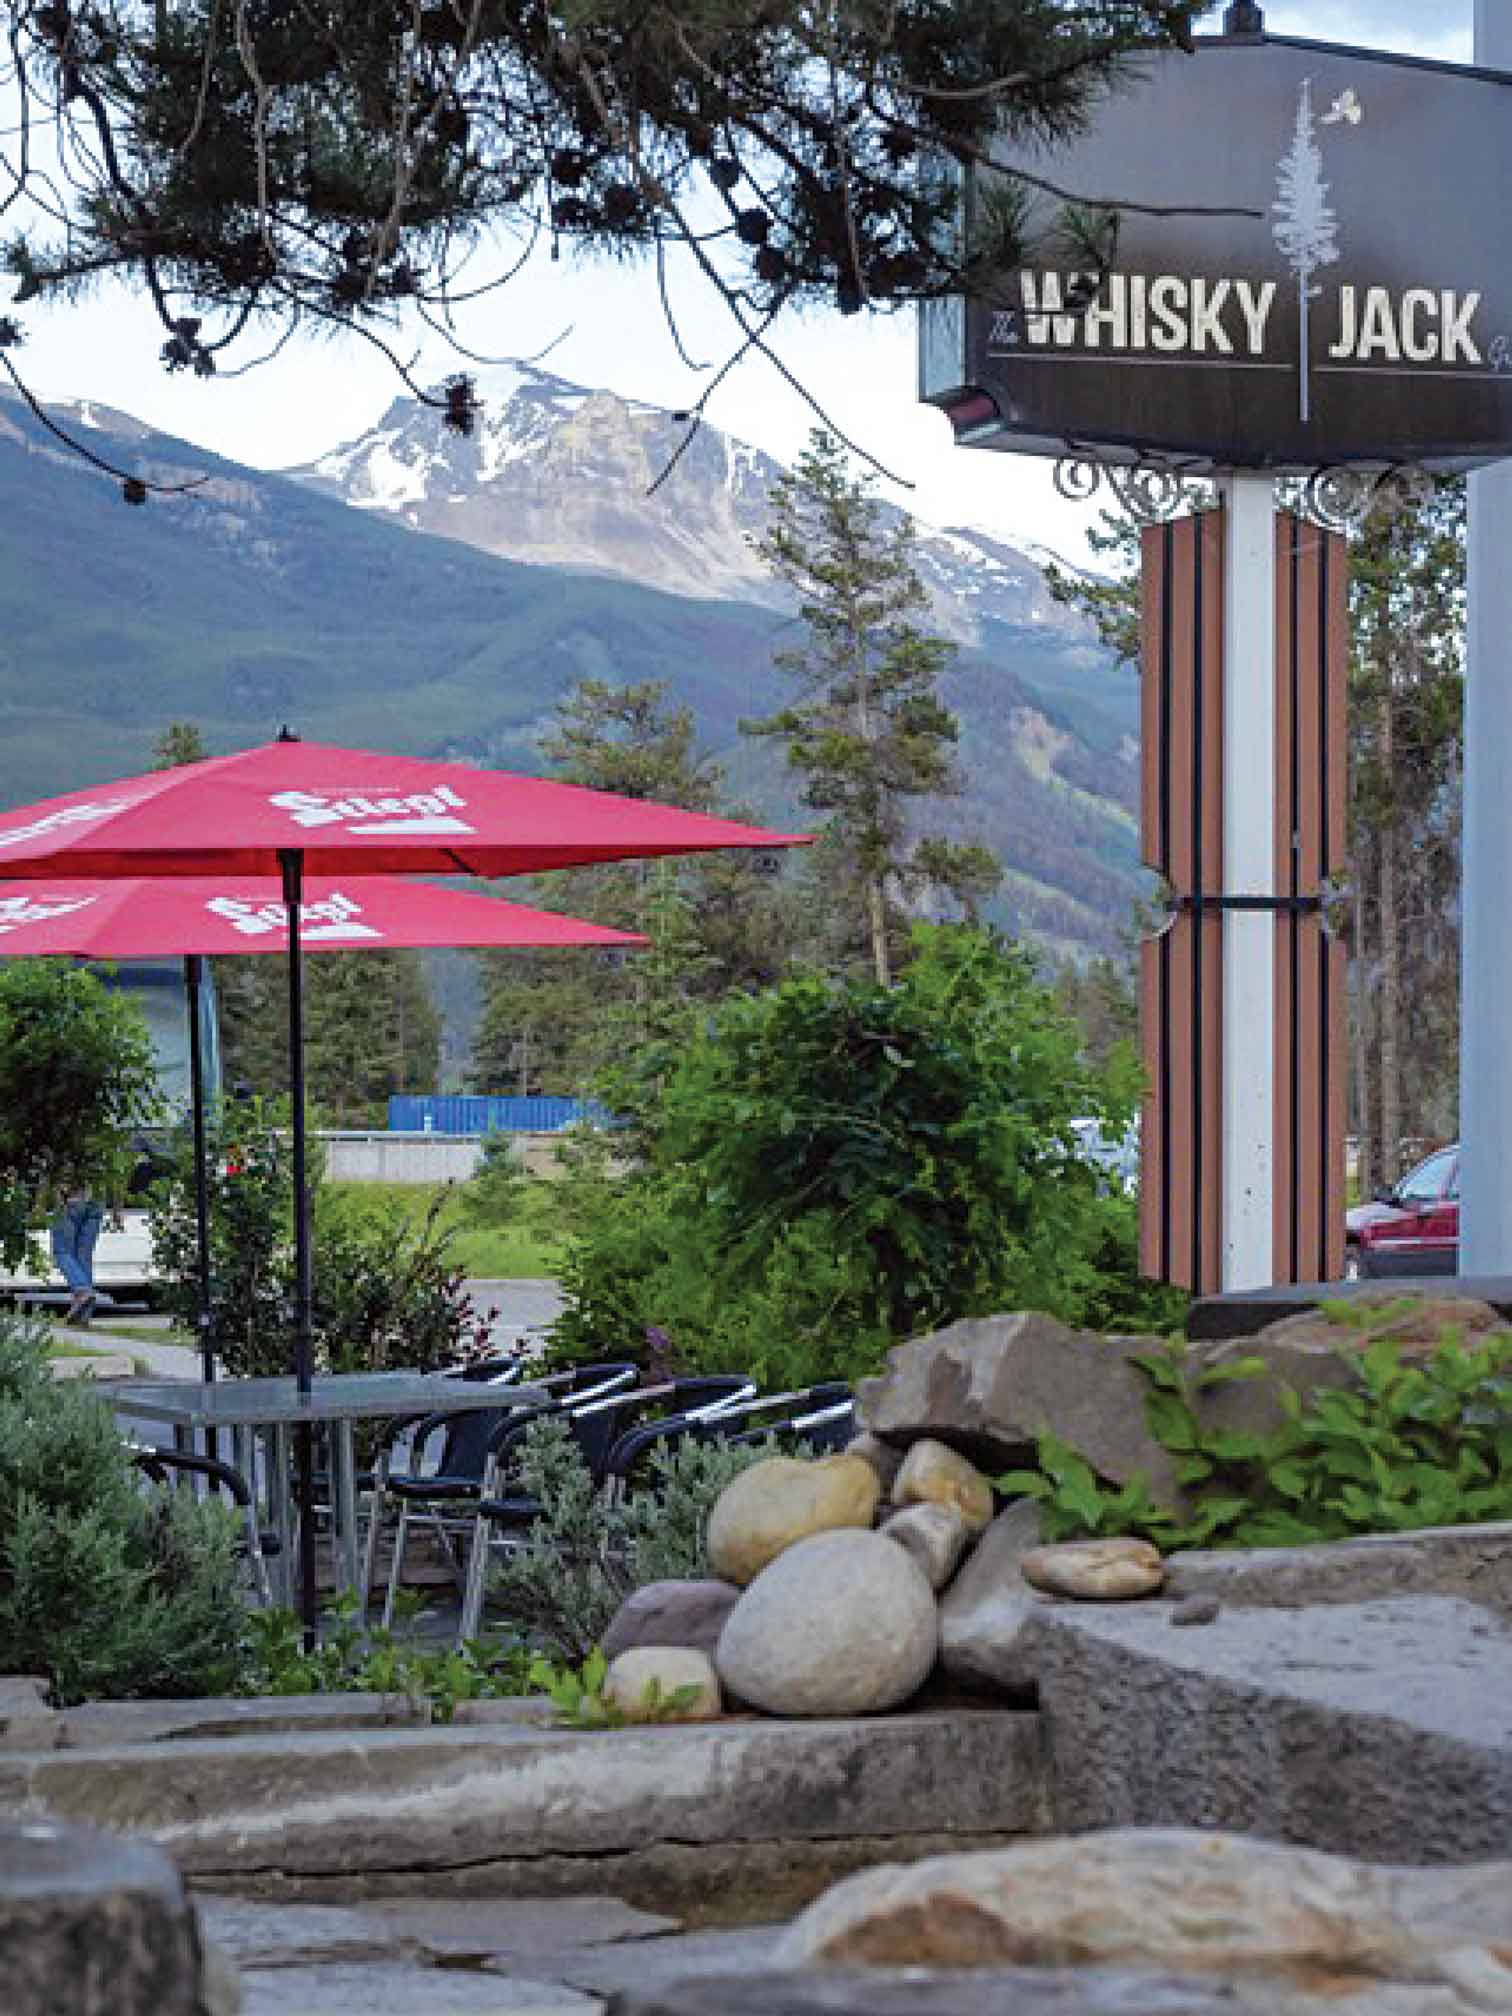 Amazing views on the Whisky Jack Grill patio